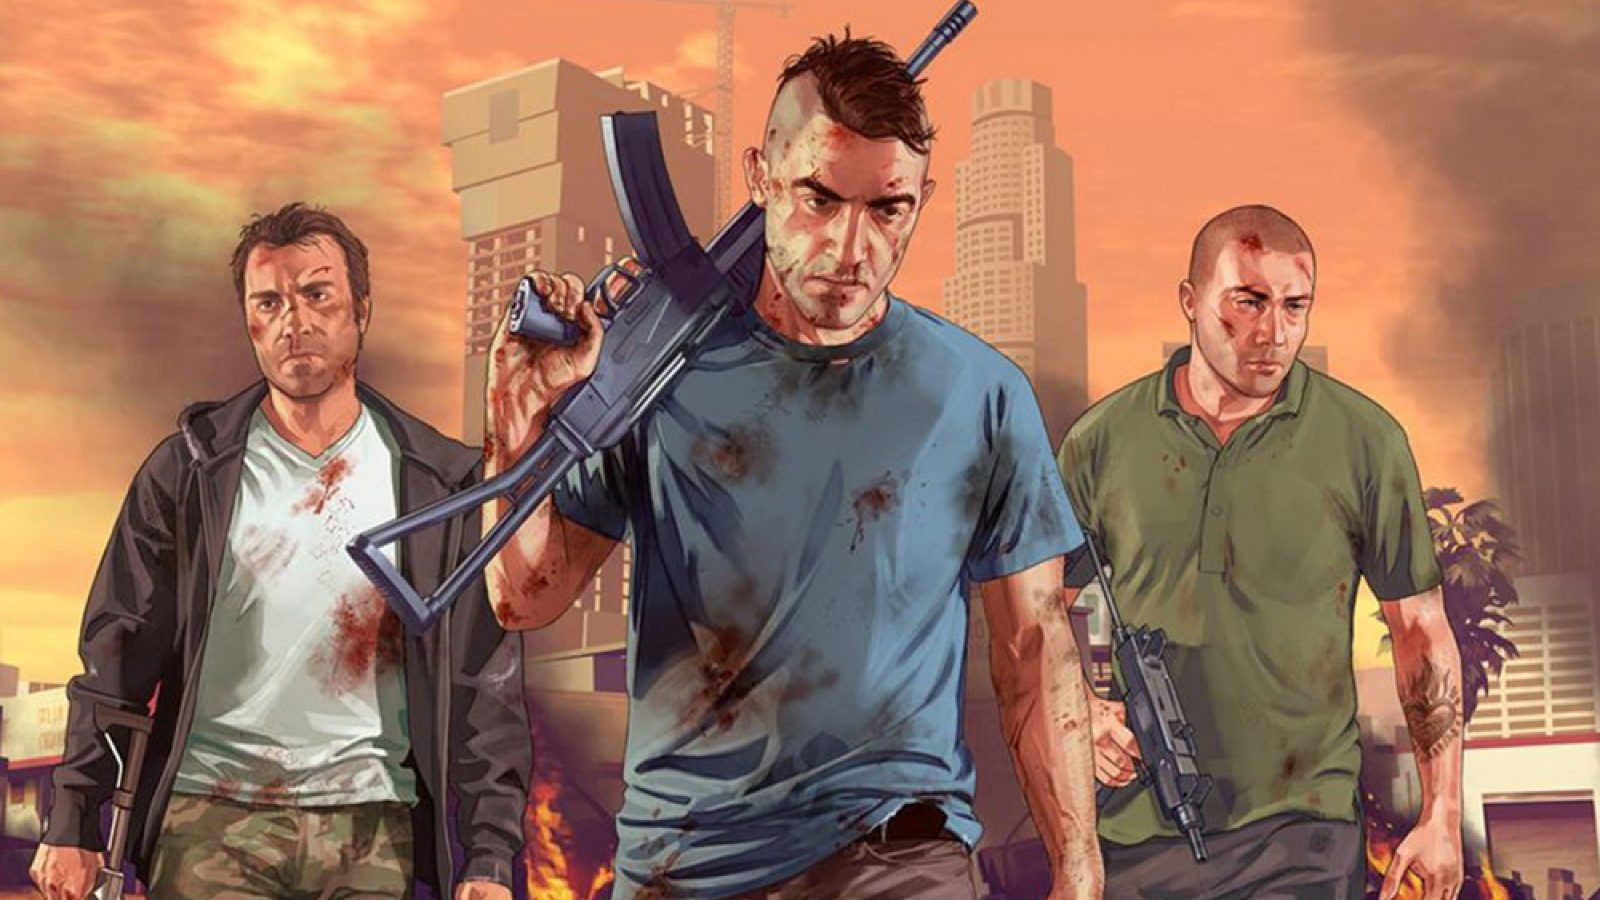 GTA 6 Latest Rumors Suggest A 2022 Release Date For Next-Gen Consoles And A Narcos Inspired Storyline